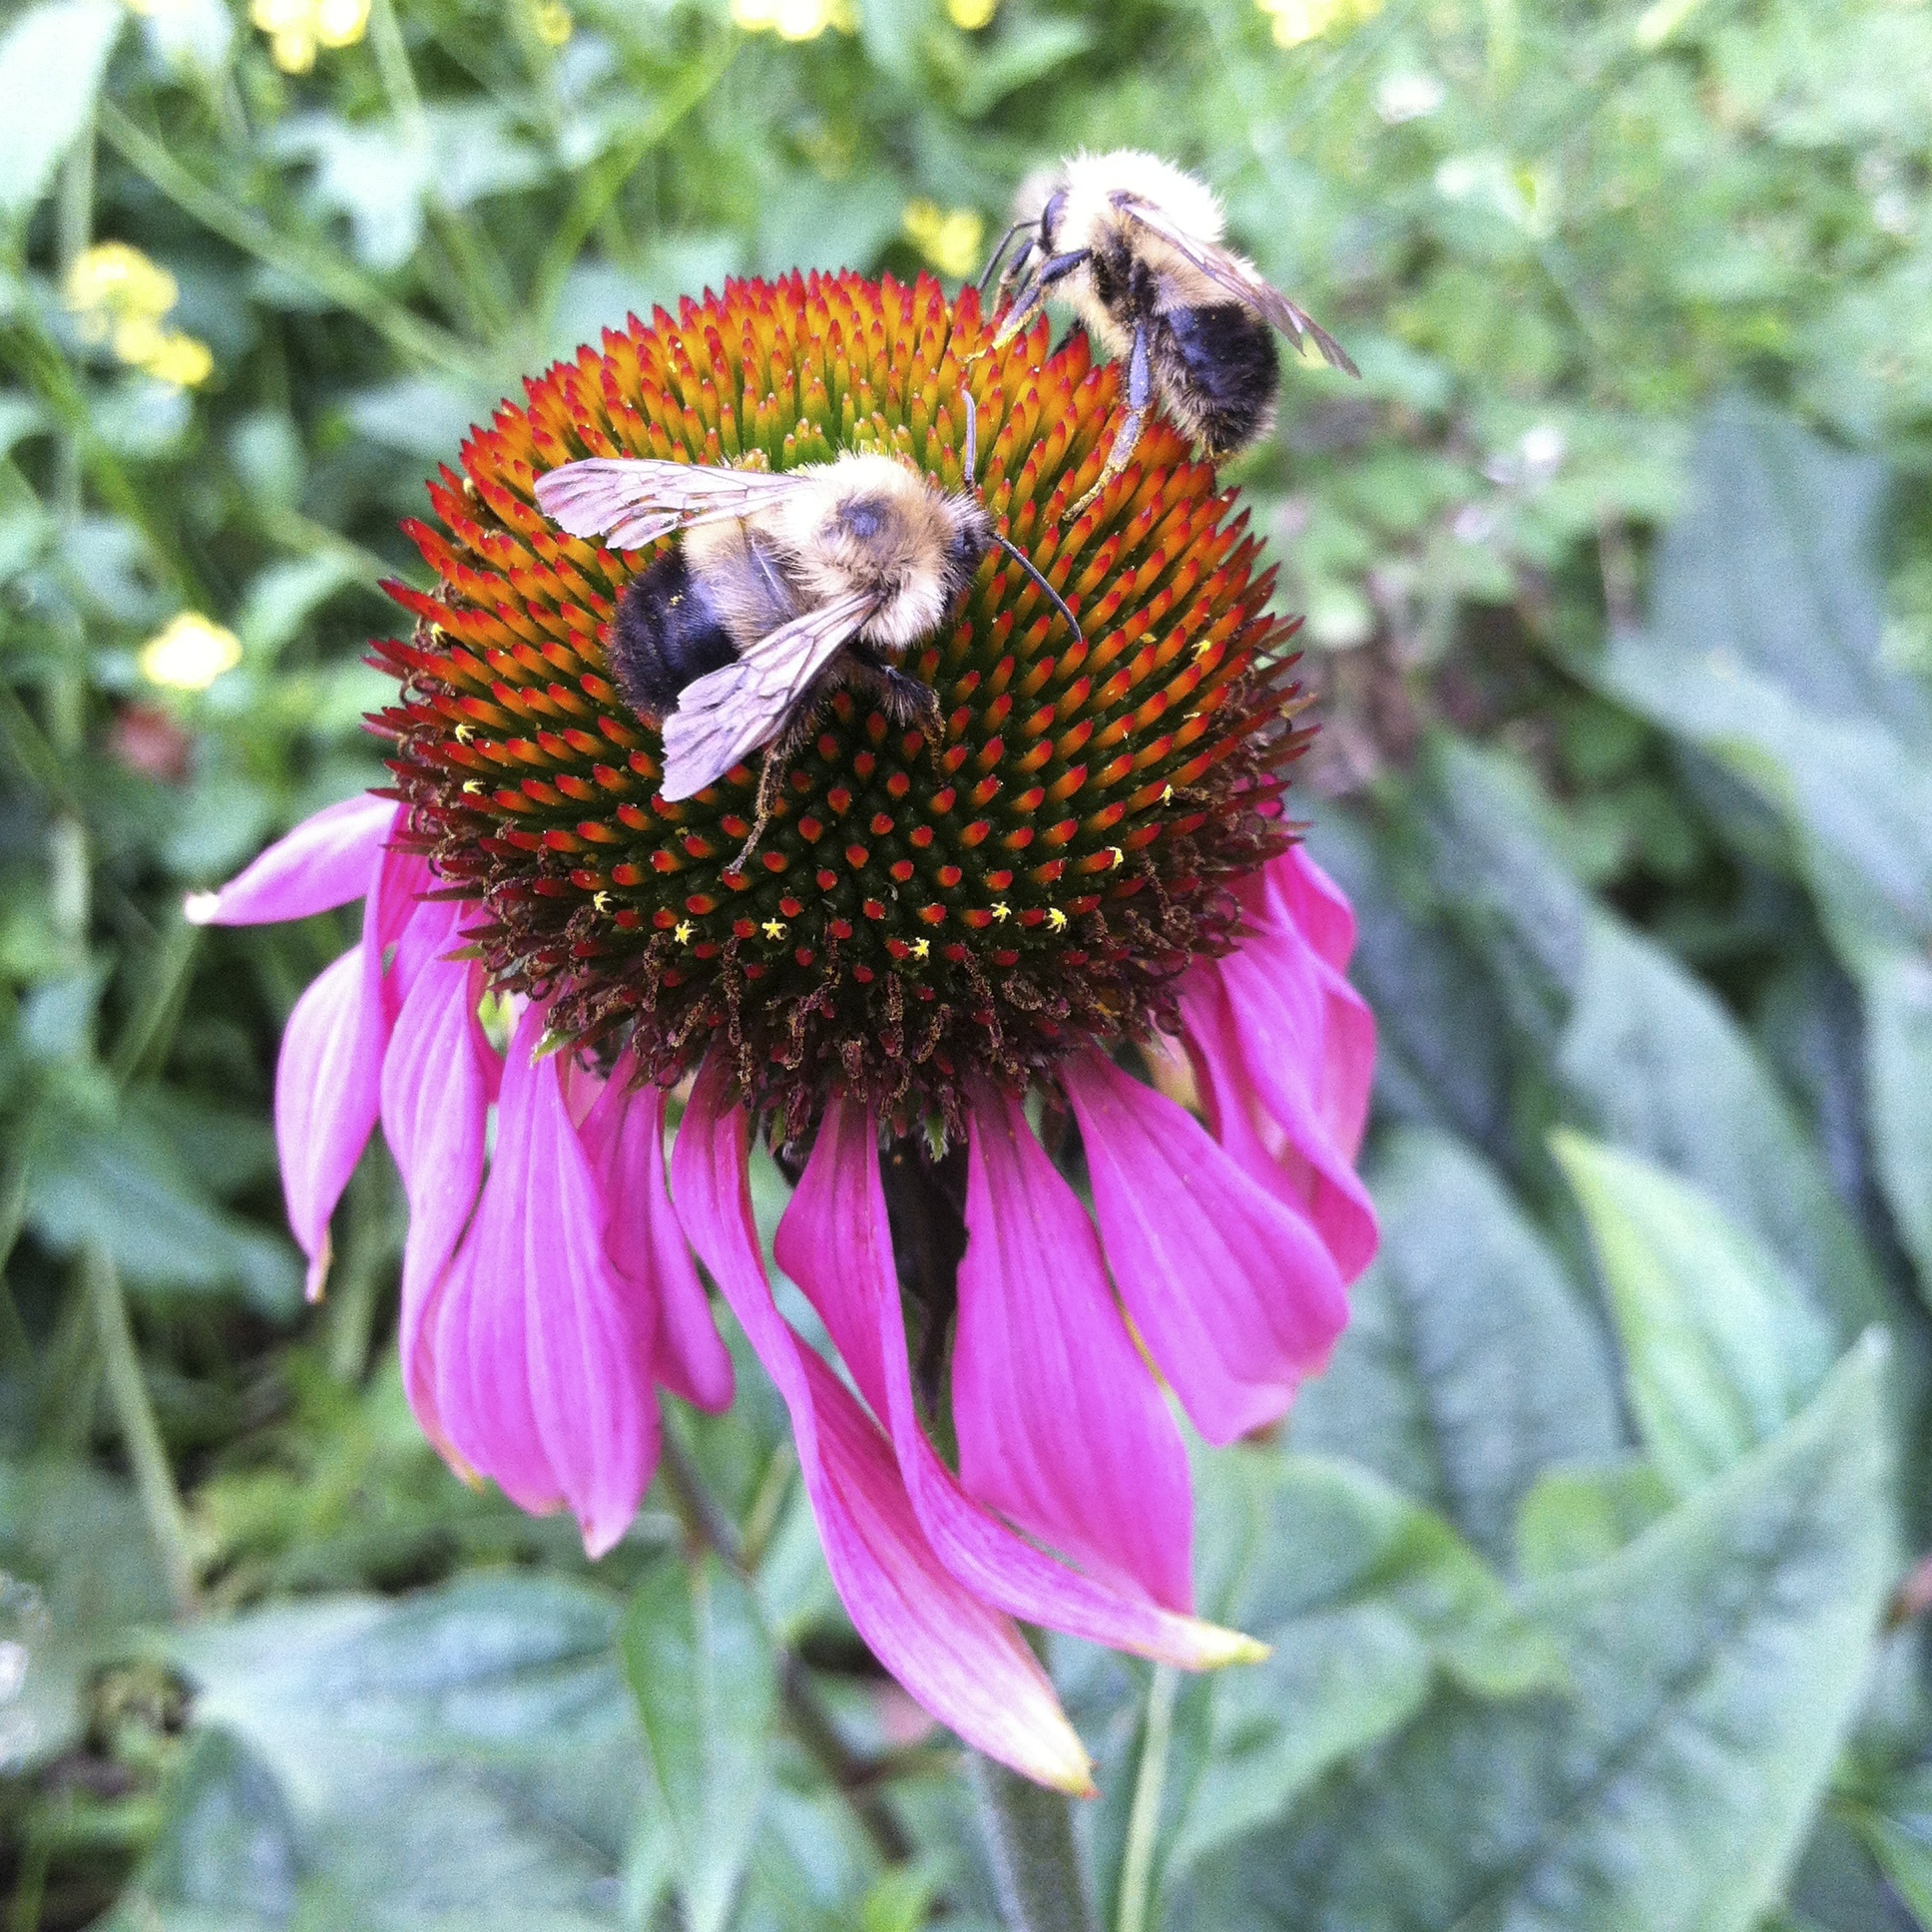 Echinacea going strong. Bumbles getting the last of the good stuff.